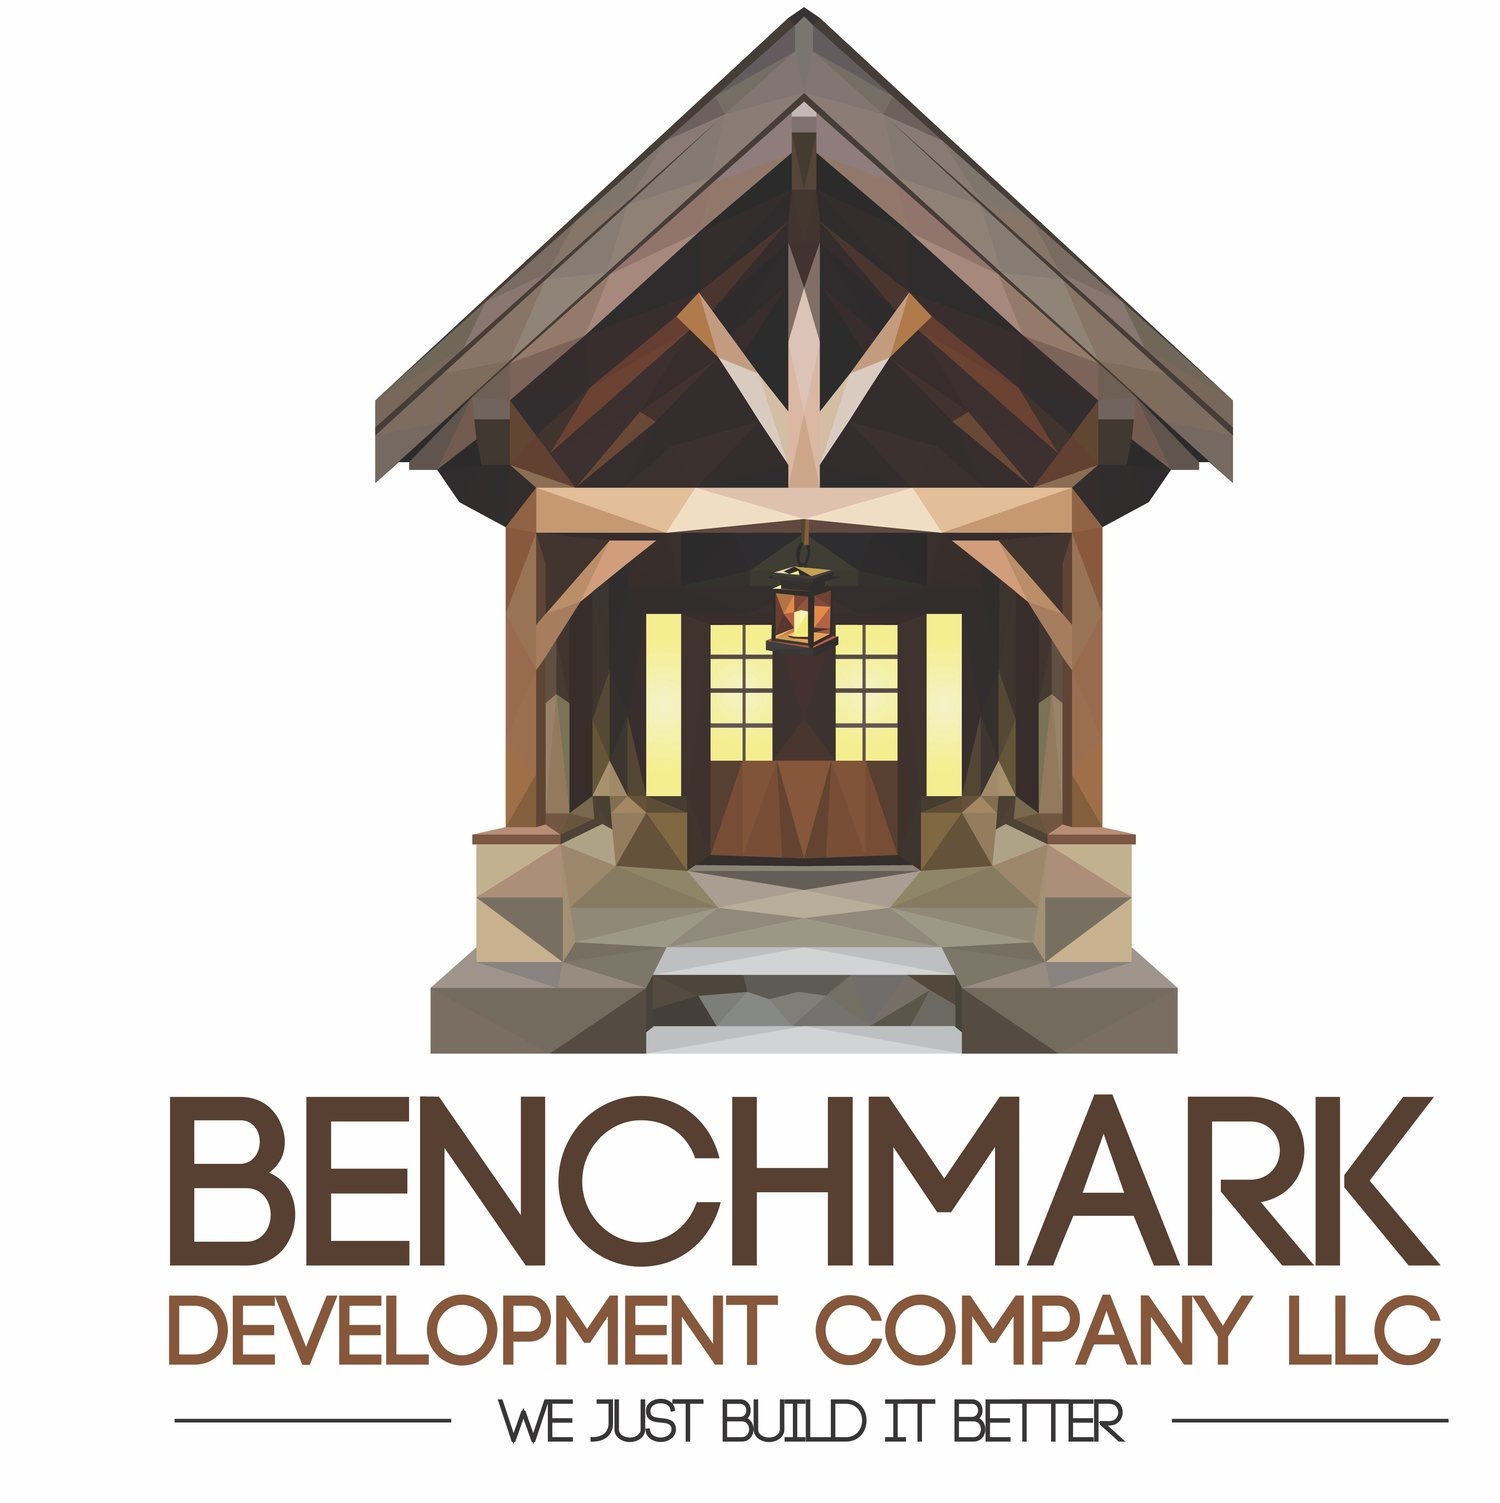 Benchmark Development Company LLC